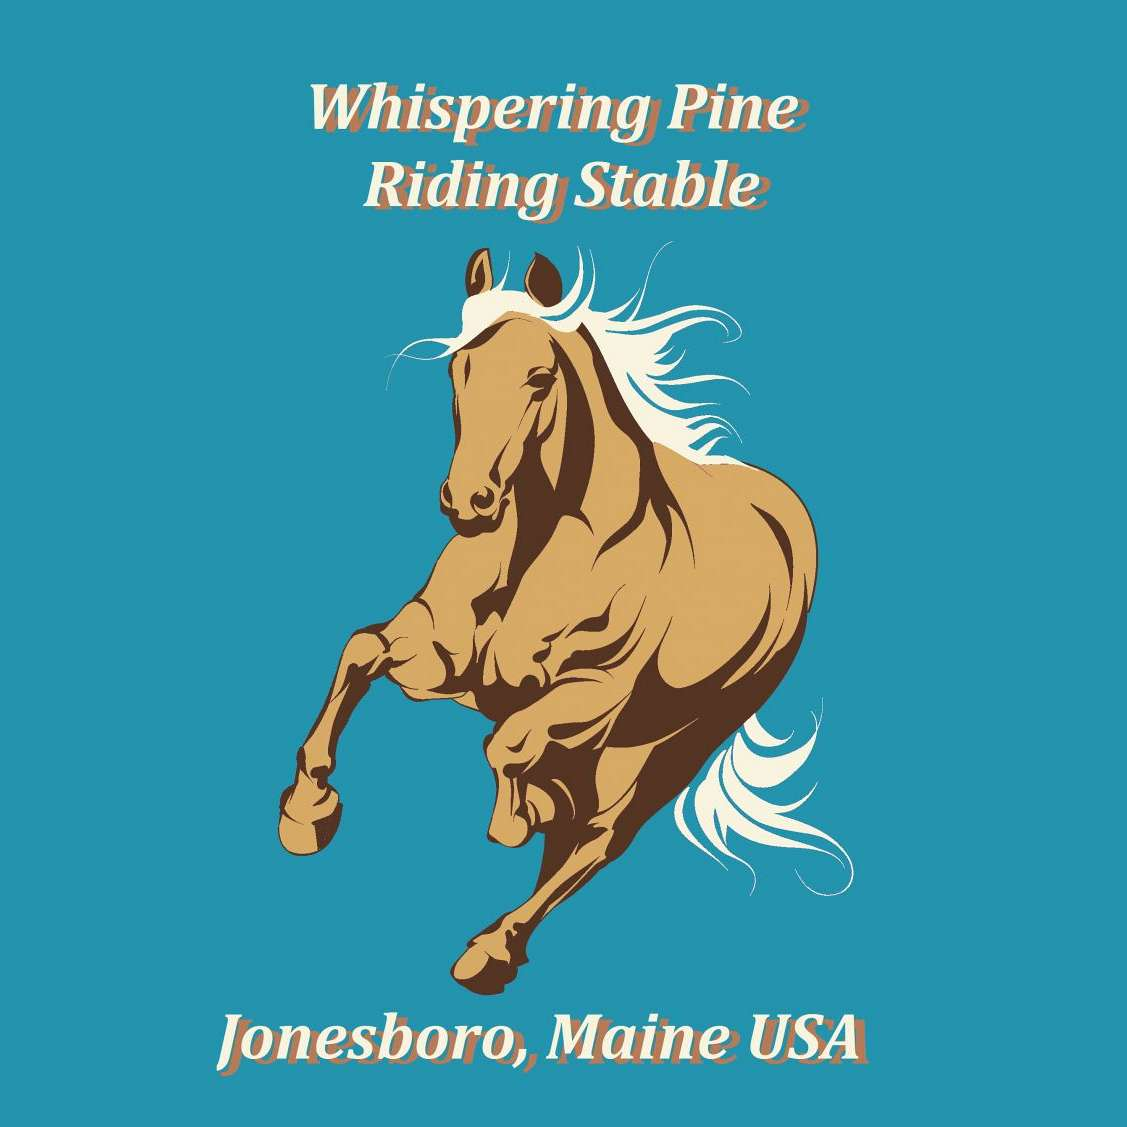 Whispering Pine Riding Stable